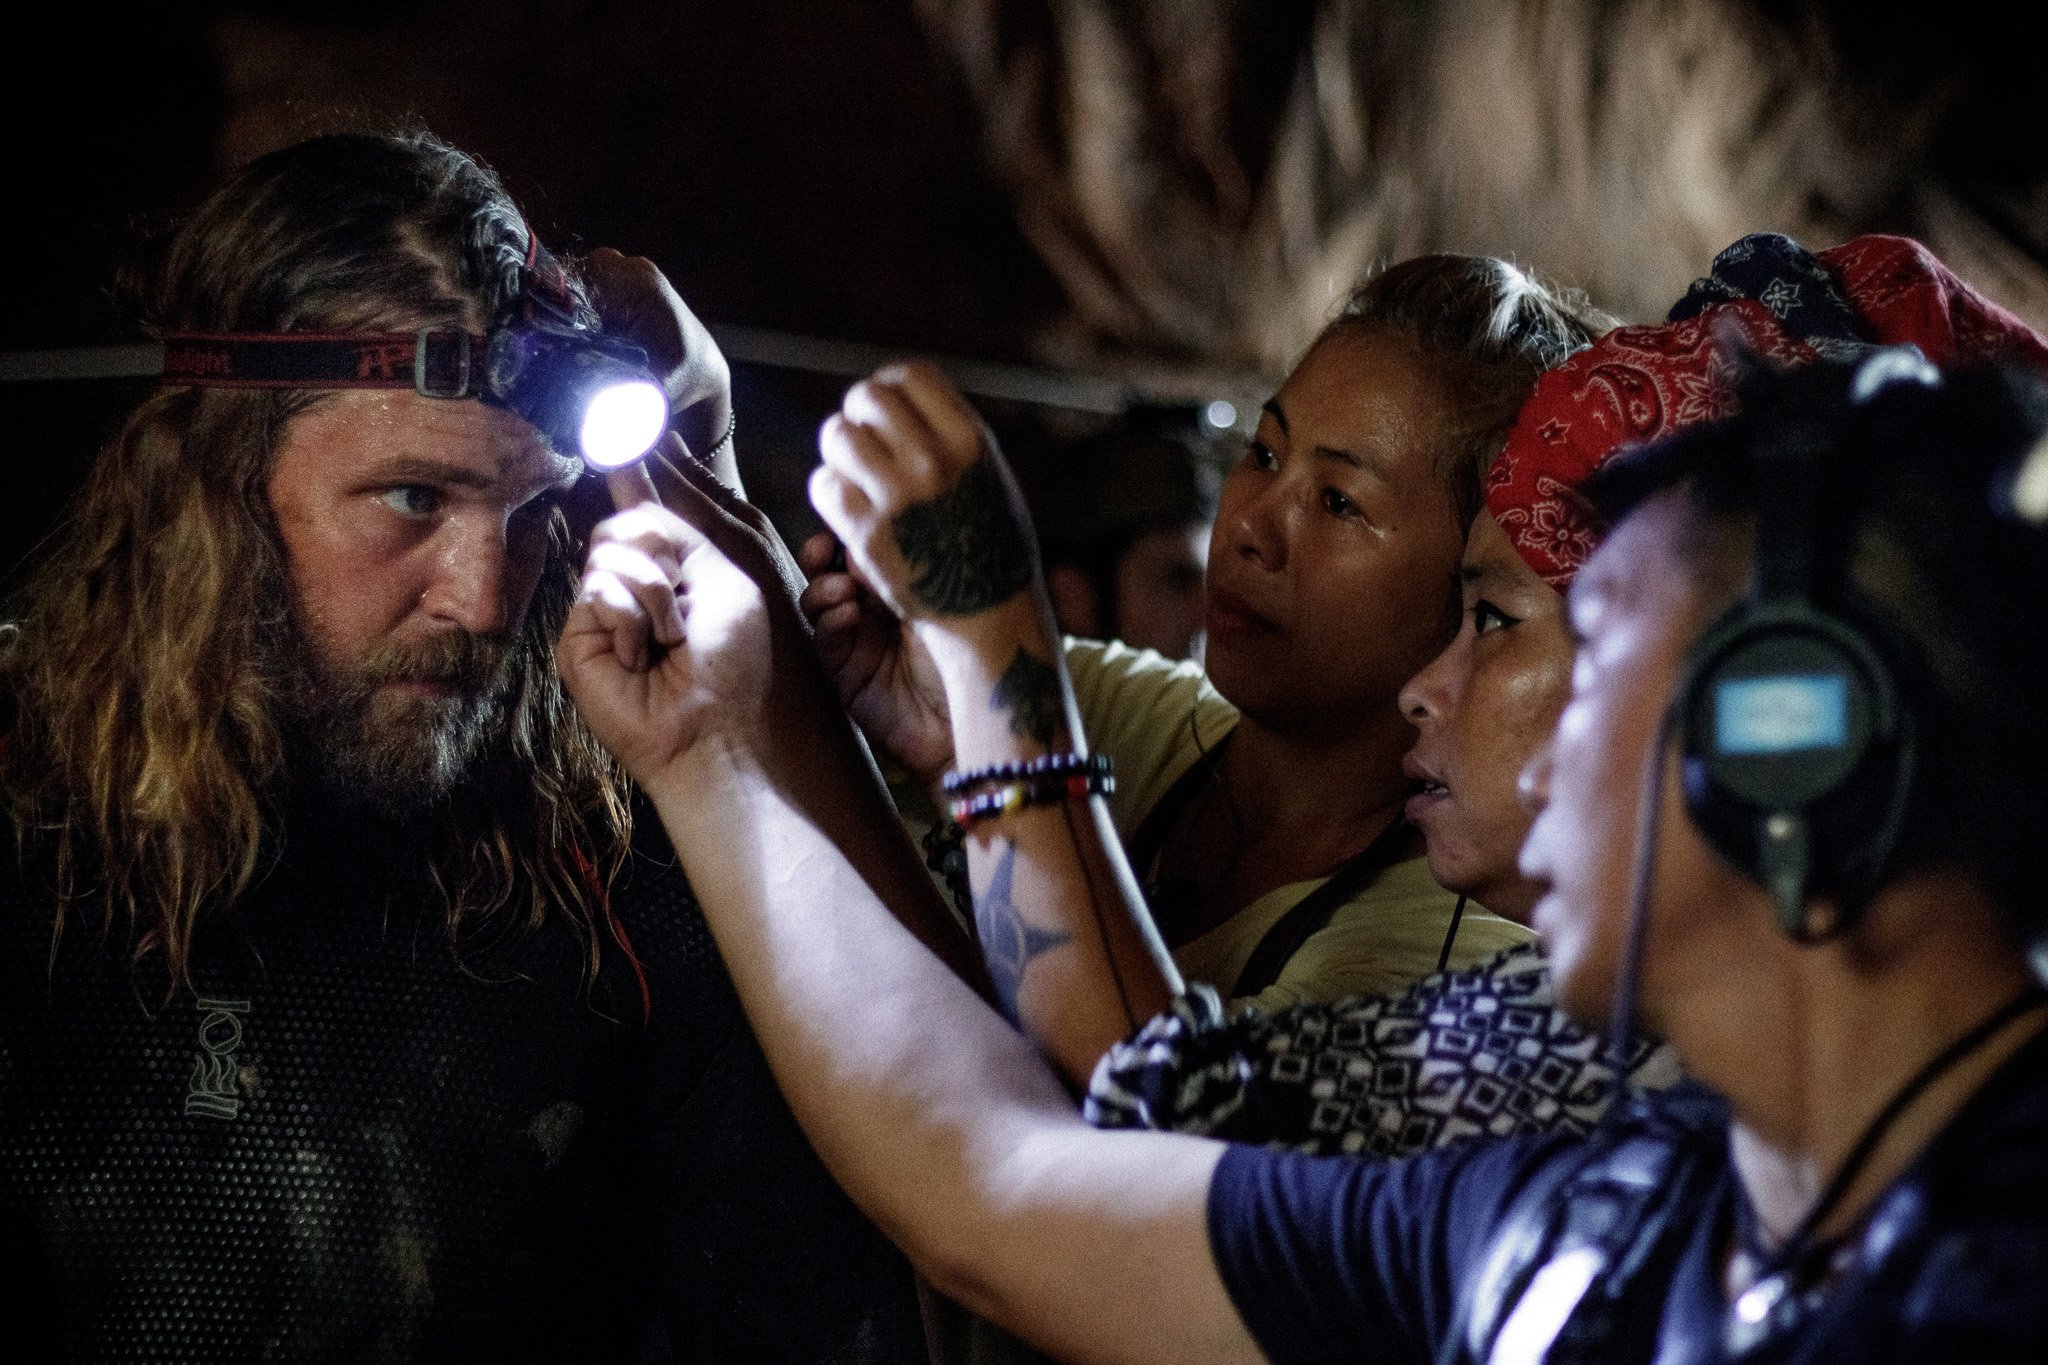 Cave rescue diver Erik Brown prepares for a scene shooting on location in Thailand for writer/director Tom Waller's 'THE CAVE'. Photo by Fredrik Divall (c) De Warrenne Pictures Co. Ltd. All Rights Reserved.